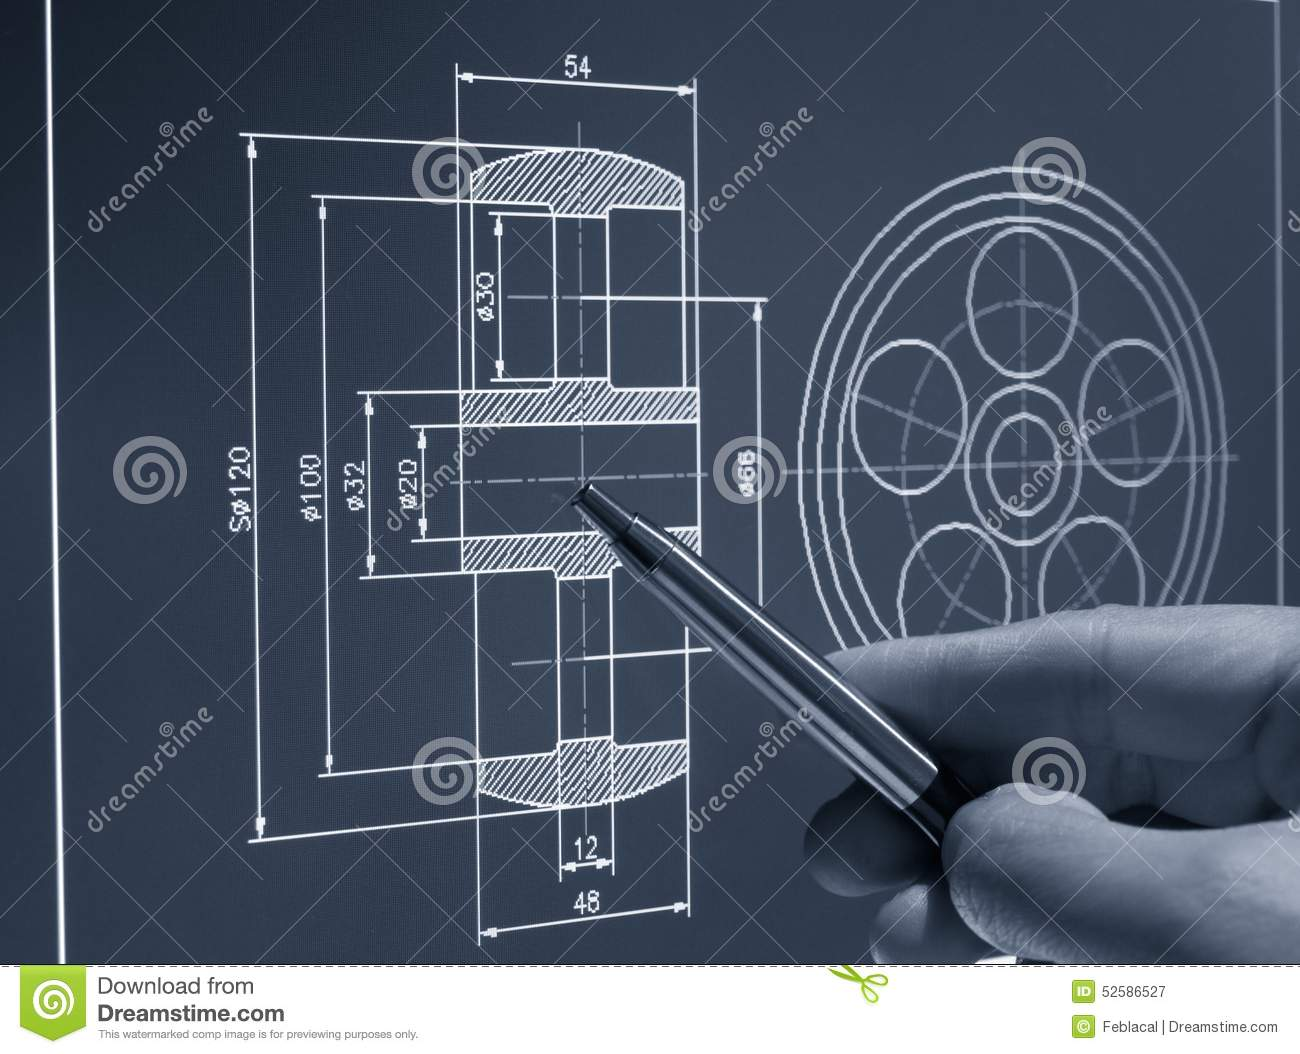 Cad Design Stock Image Image Of Built Contractor Frame: create a blueprint online